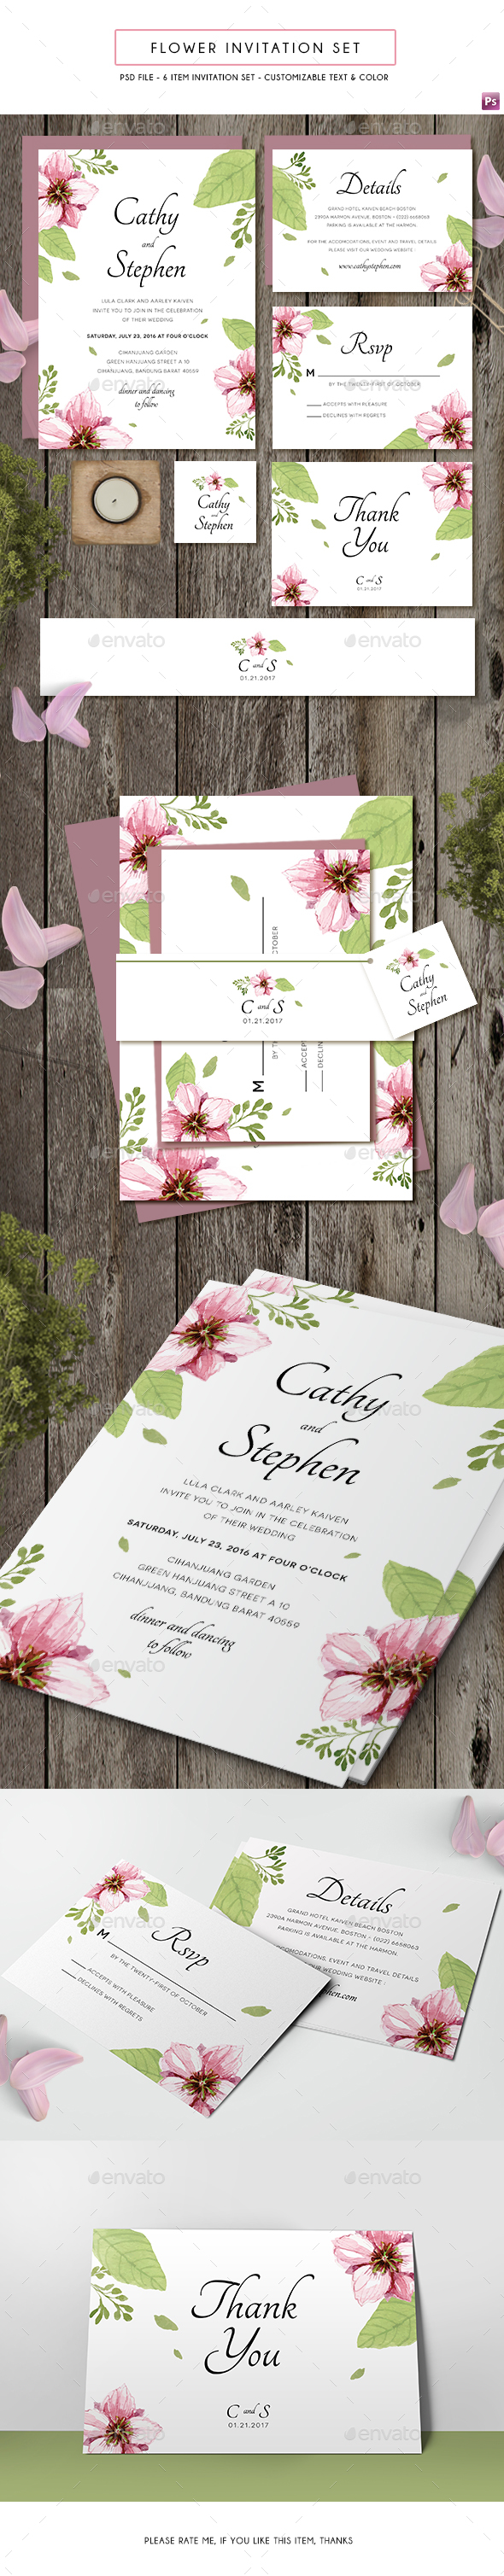 Flower Invitation - Weddings Cards & Invites